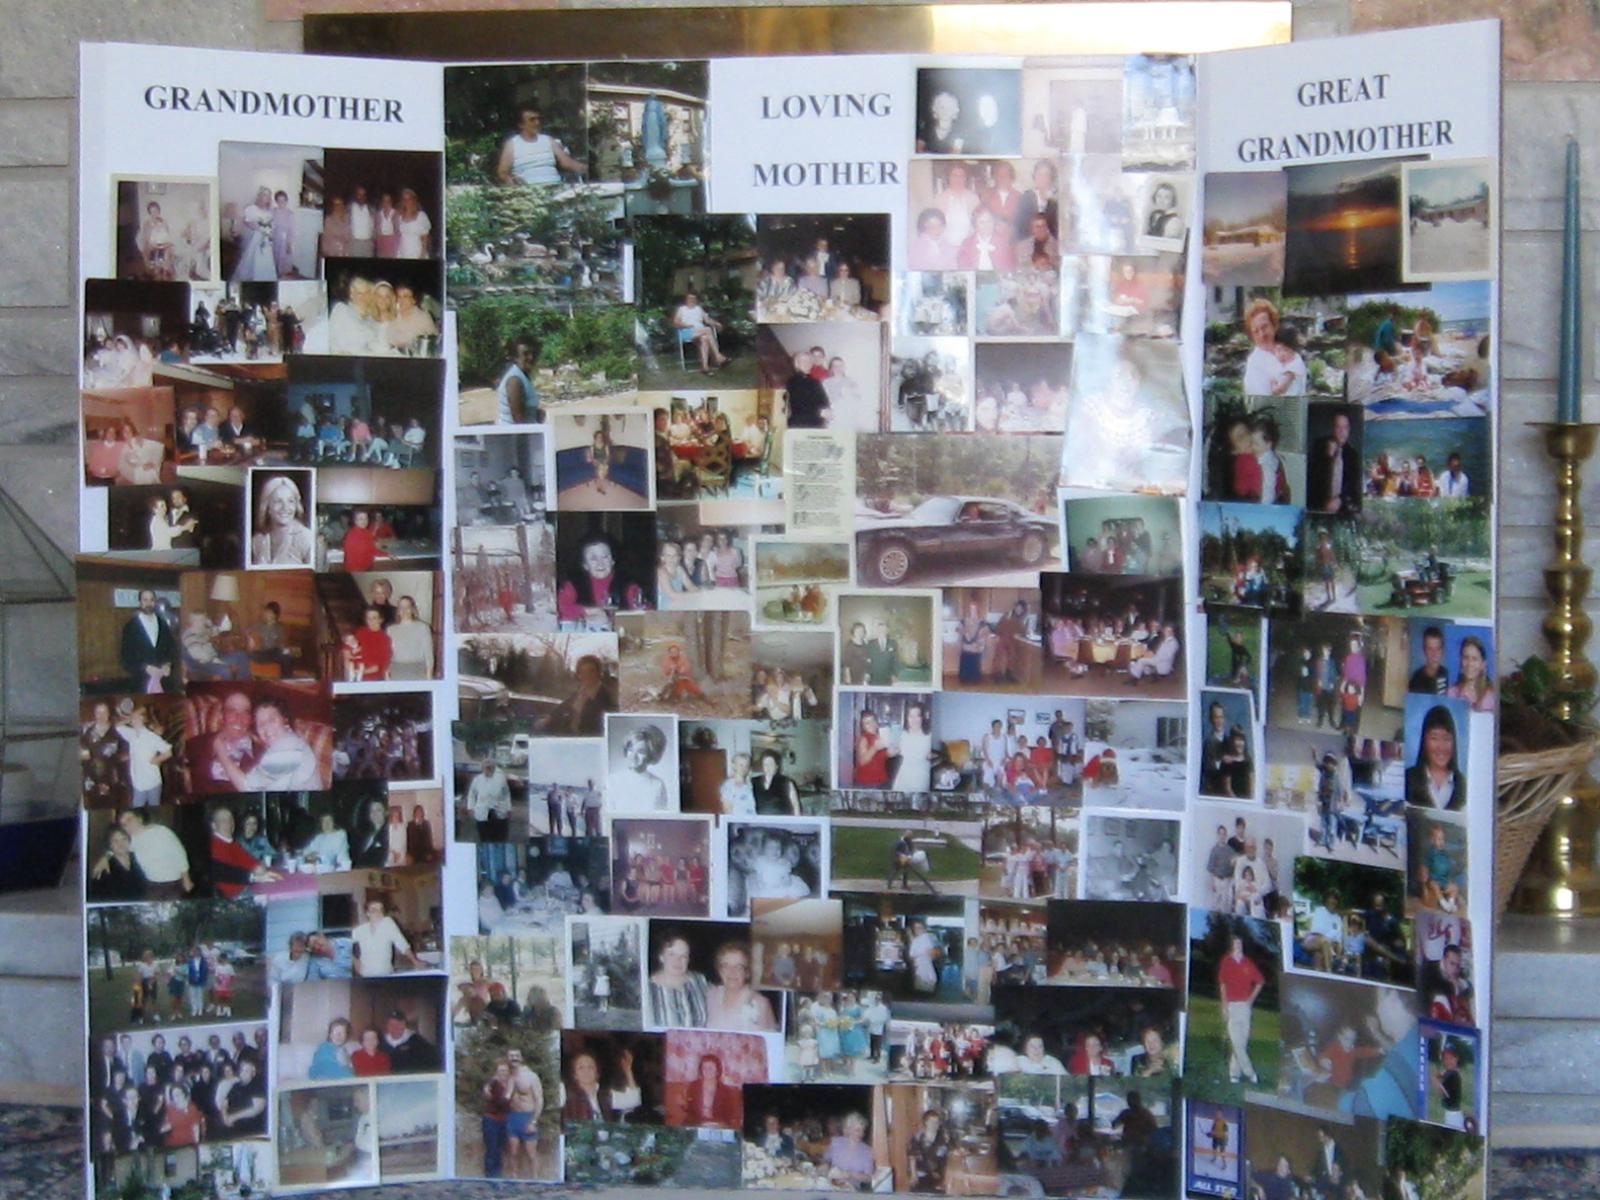 Mary s memorial board on Monday